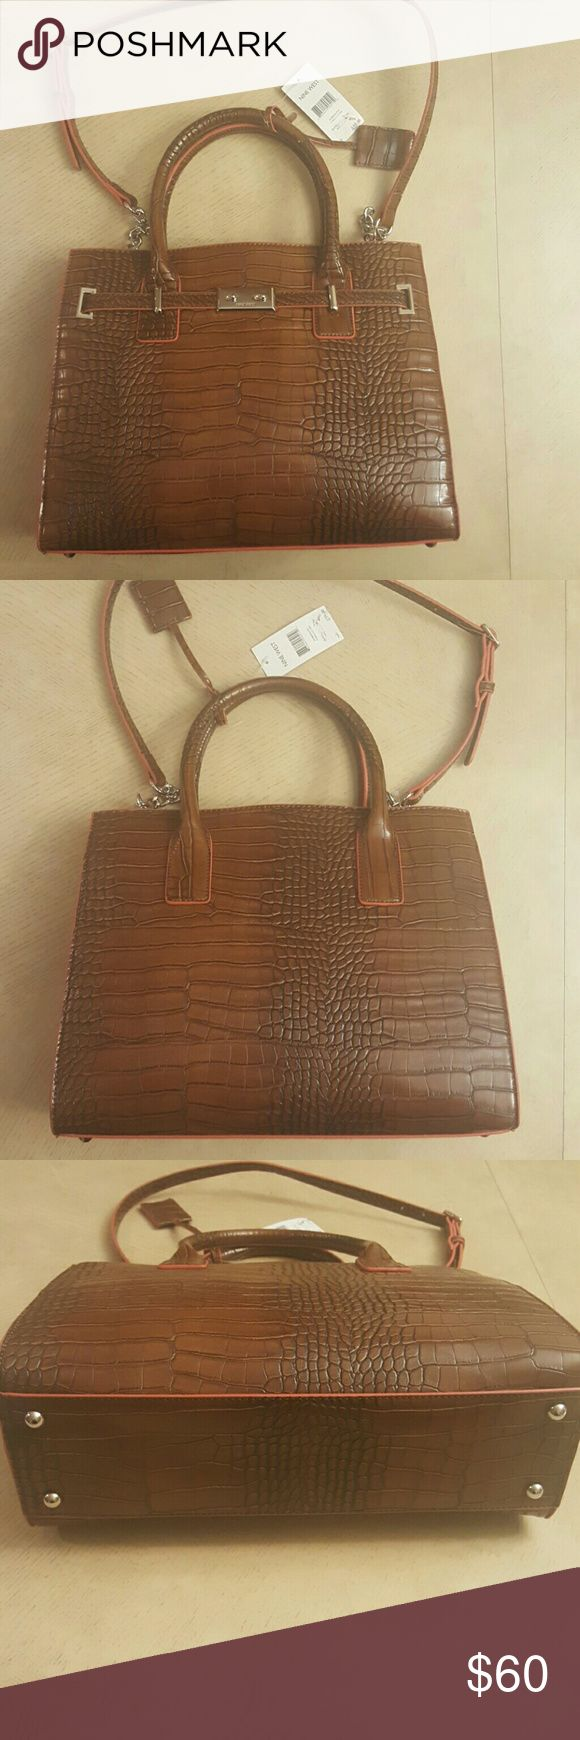 NWT Nine West Internal Affairs Large Tote Tobacco NWT Nine West Internal Affairs Large Tote Tobacco. Excellent condition with original tags. Nine West Bags Totes